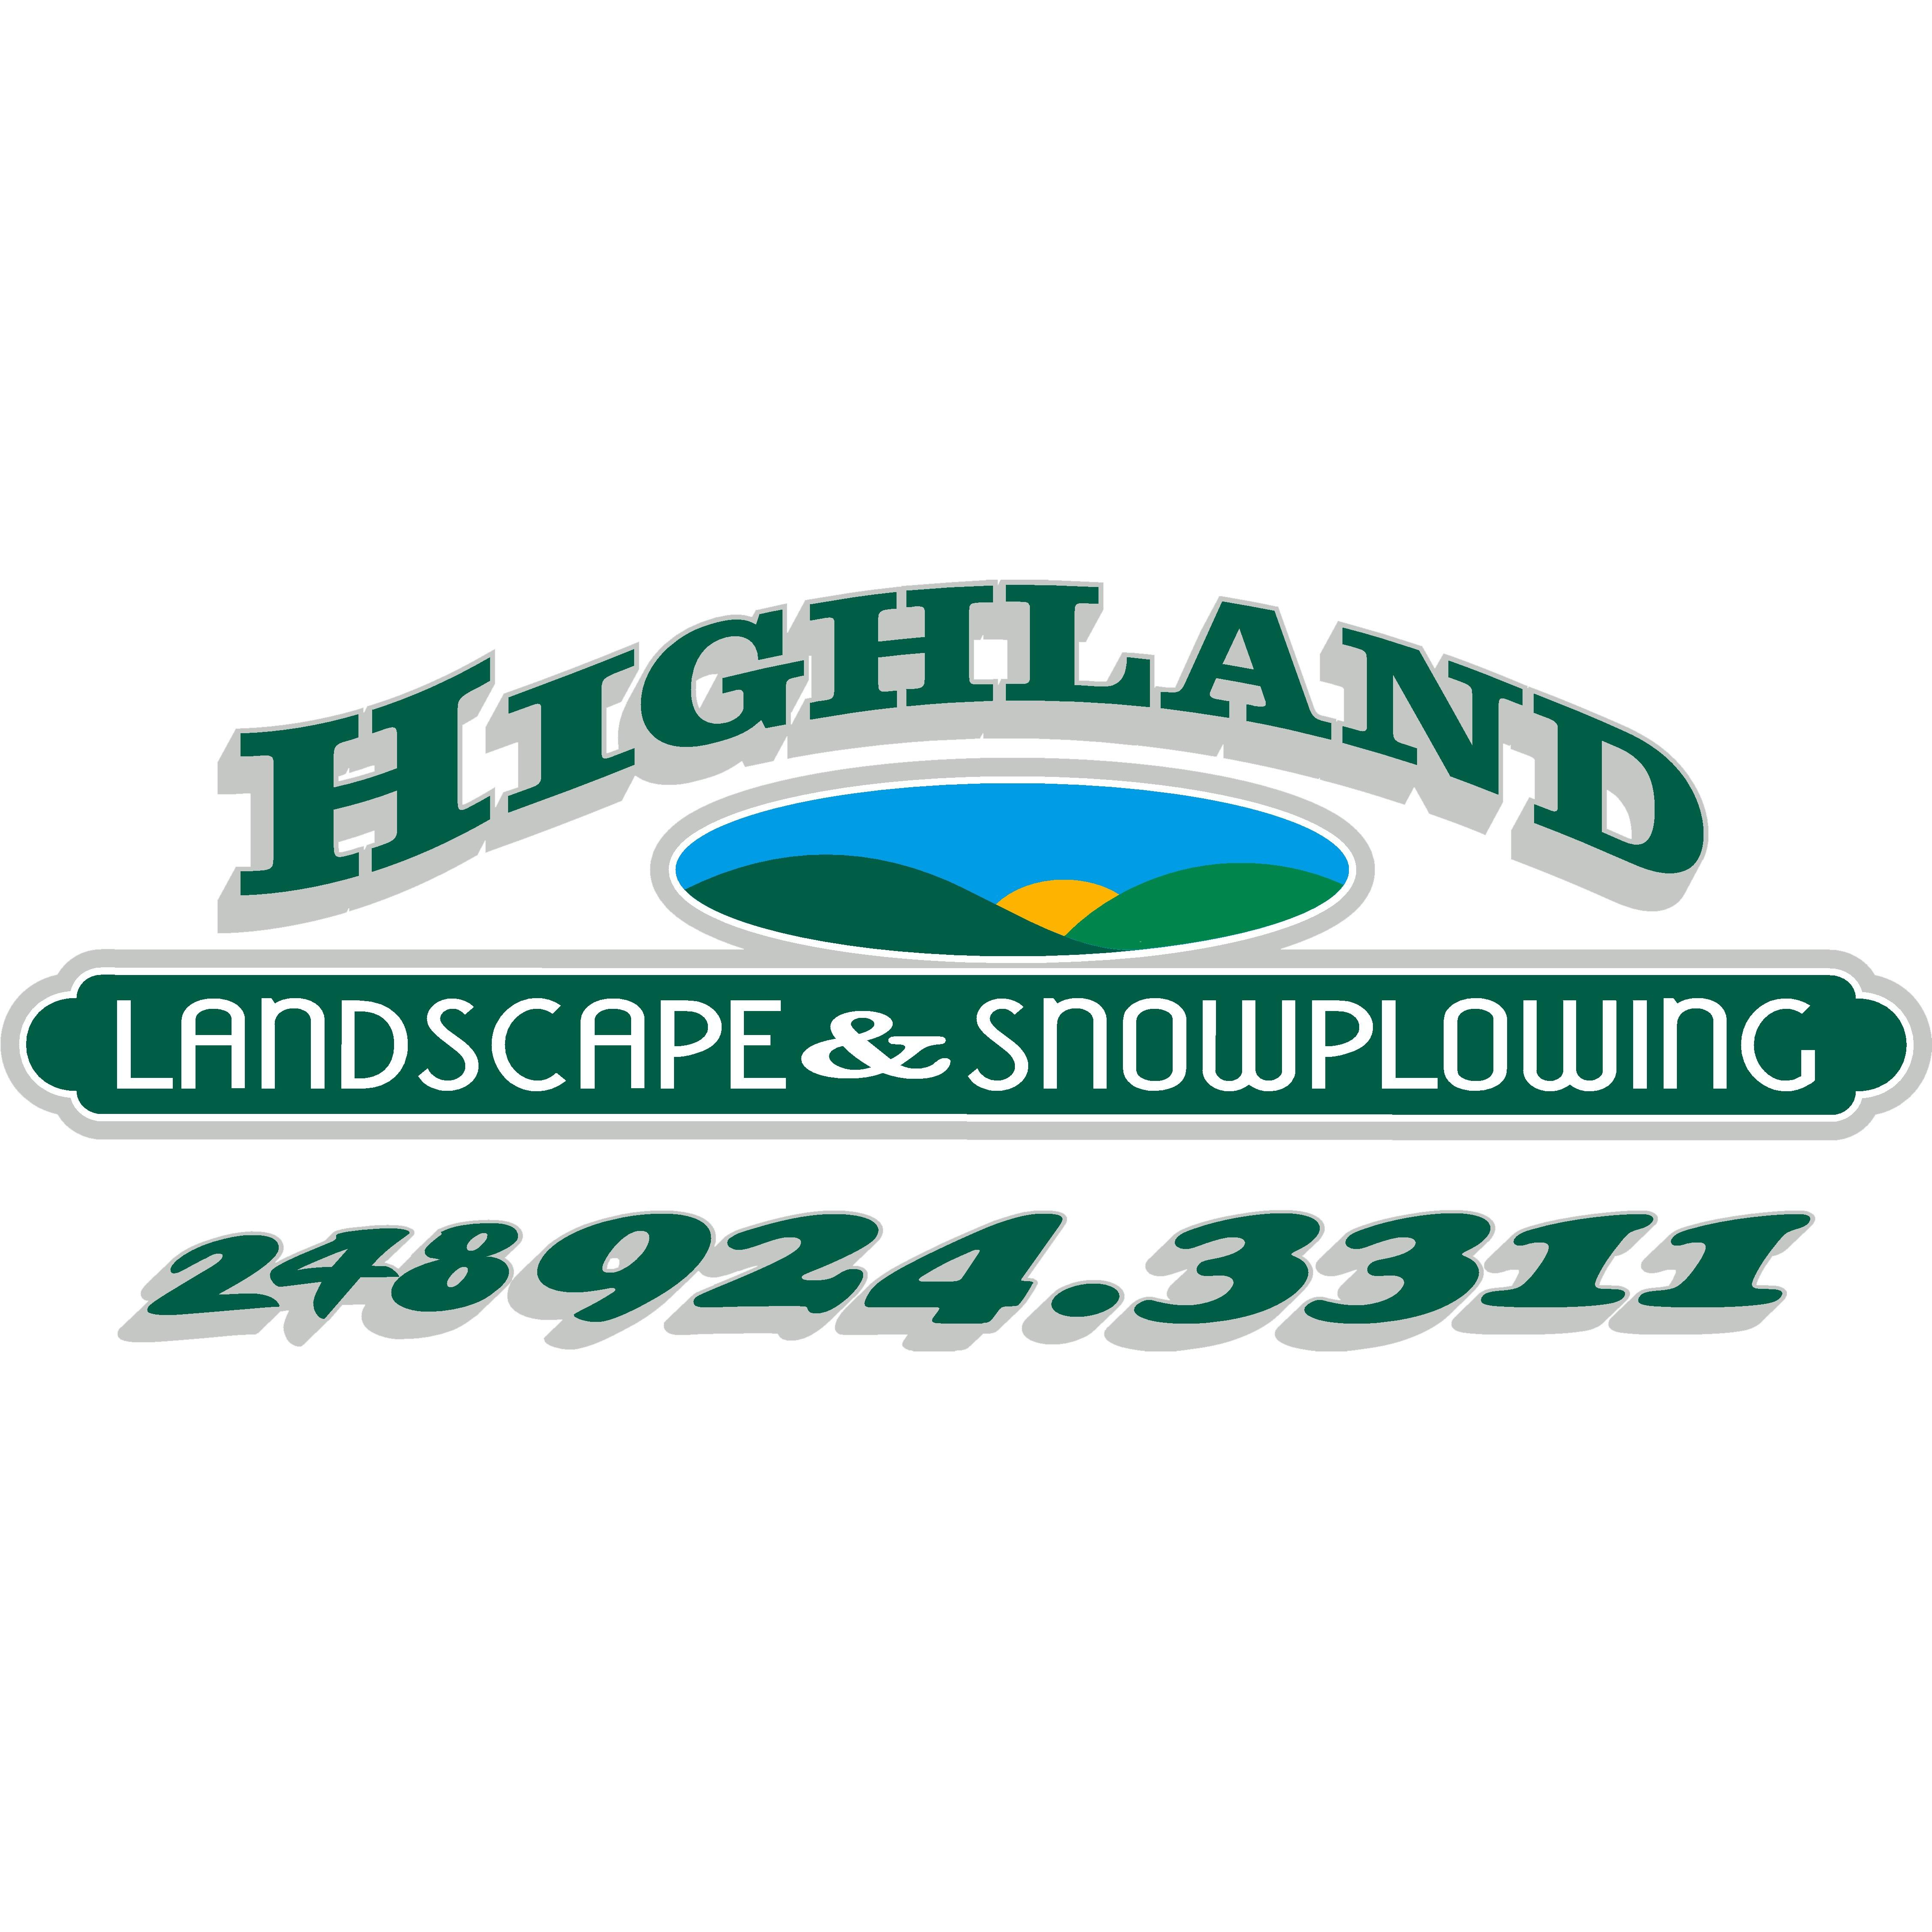 Highland Landscaping & Snowplowing